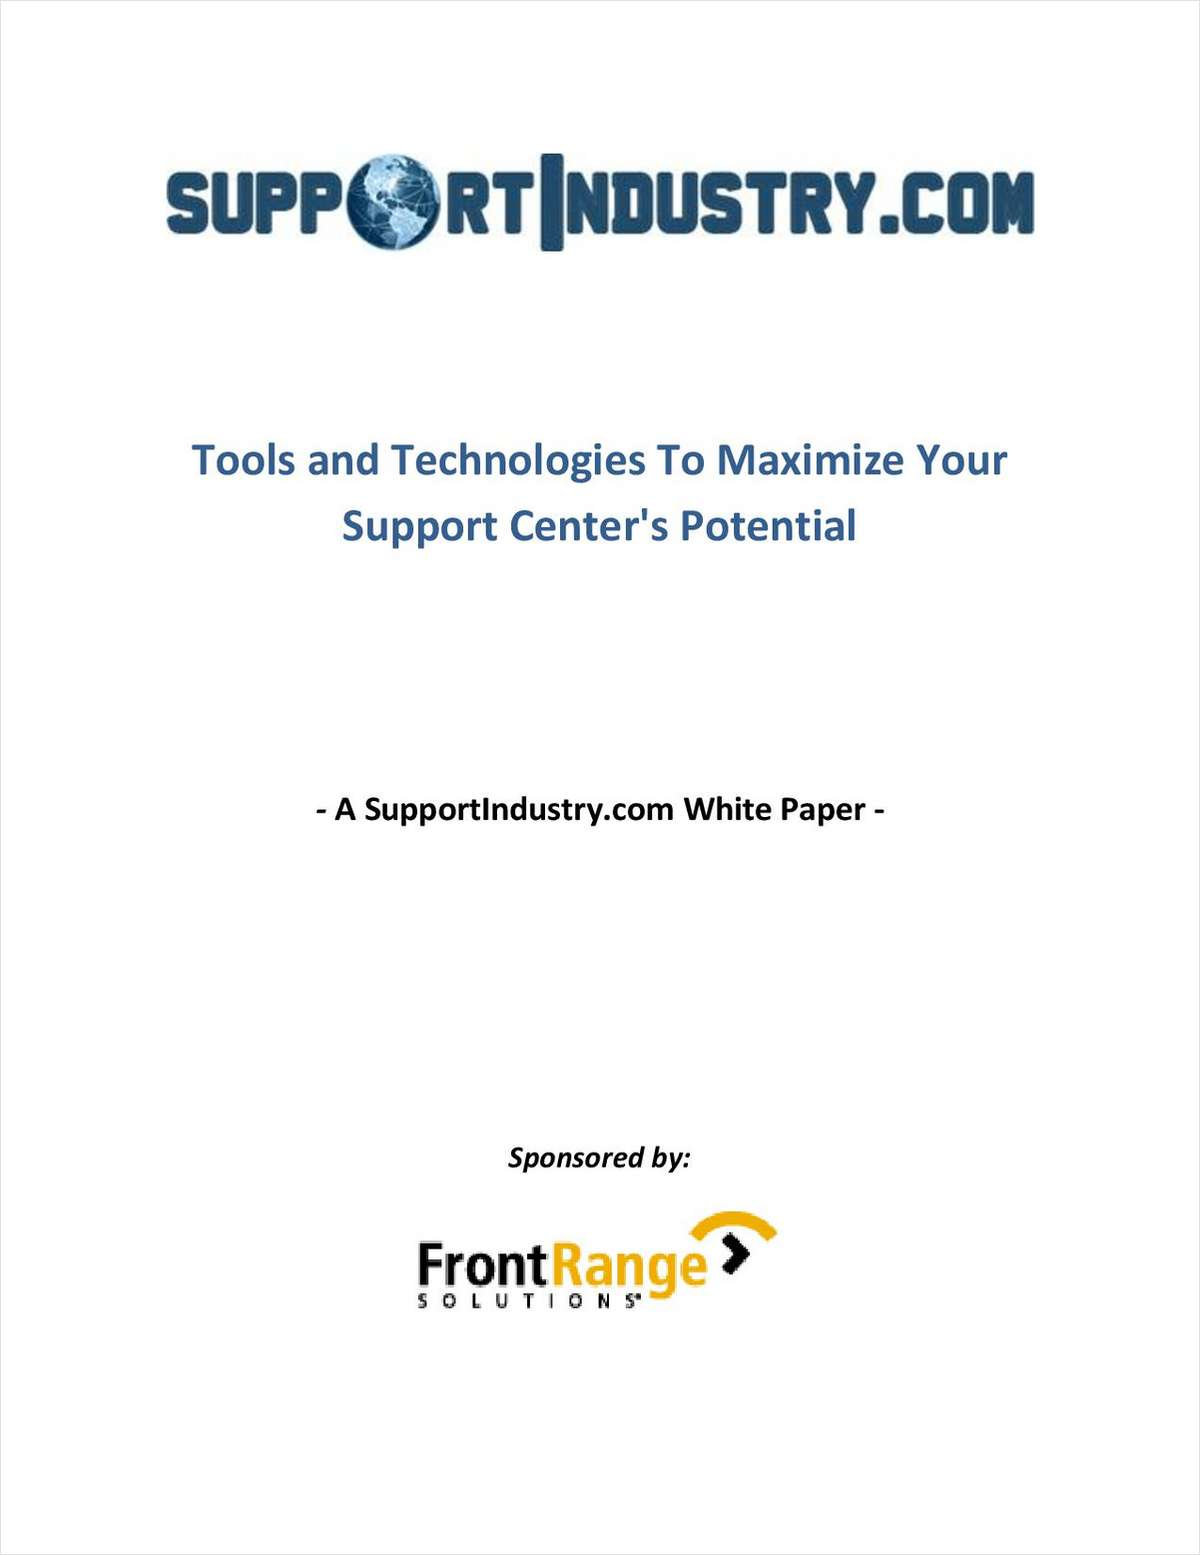 Tools and Technologies to Maximize Your Support Center's Potential